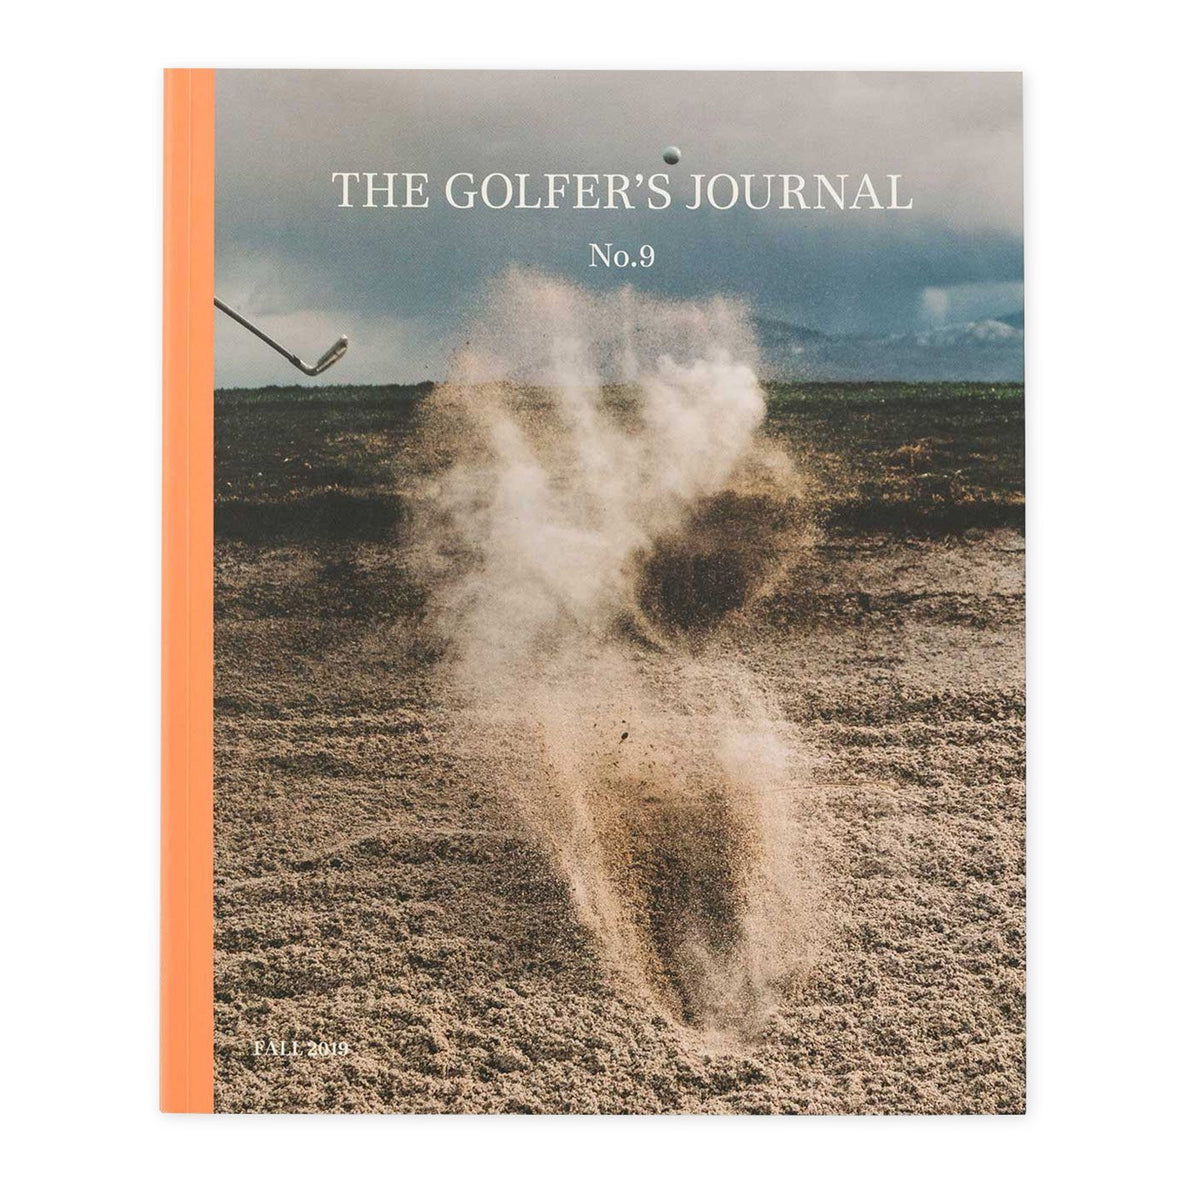 The Golfer's Journal #9